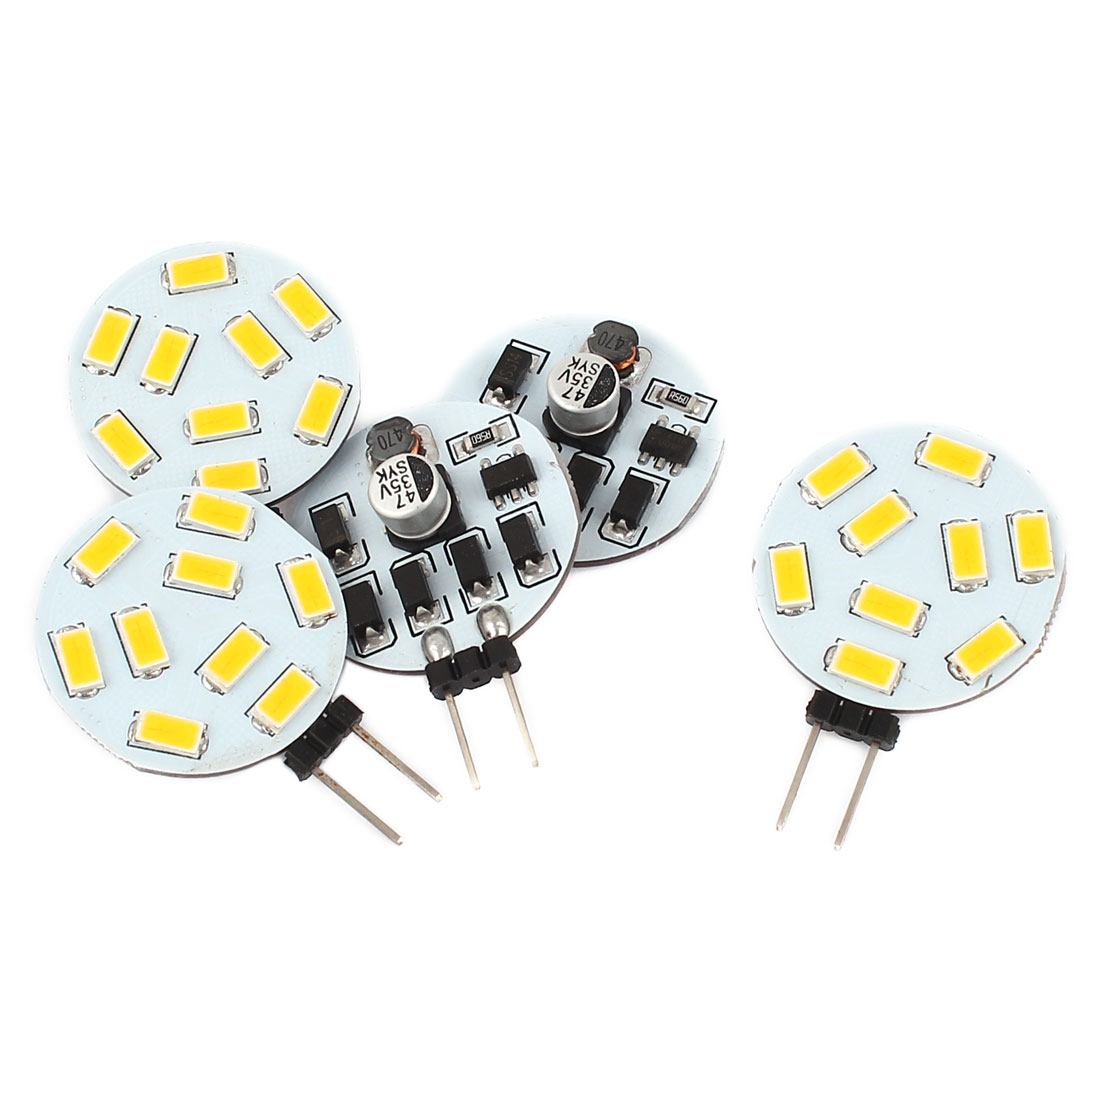 5 x 120 Degree G4 5730 SMD 9 LED Cabinet Marine Boat Light Bulb Lamp Warm White